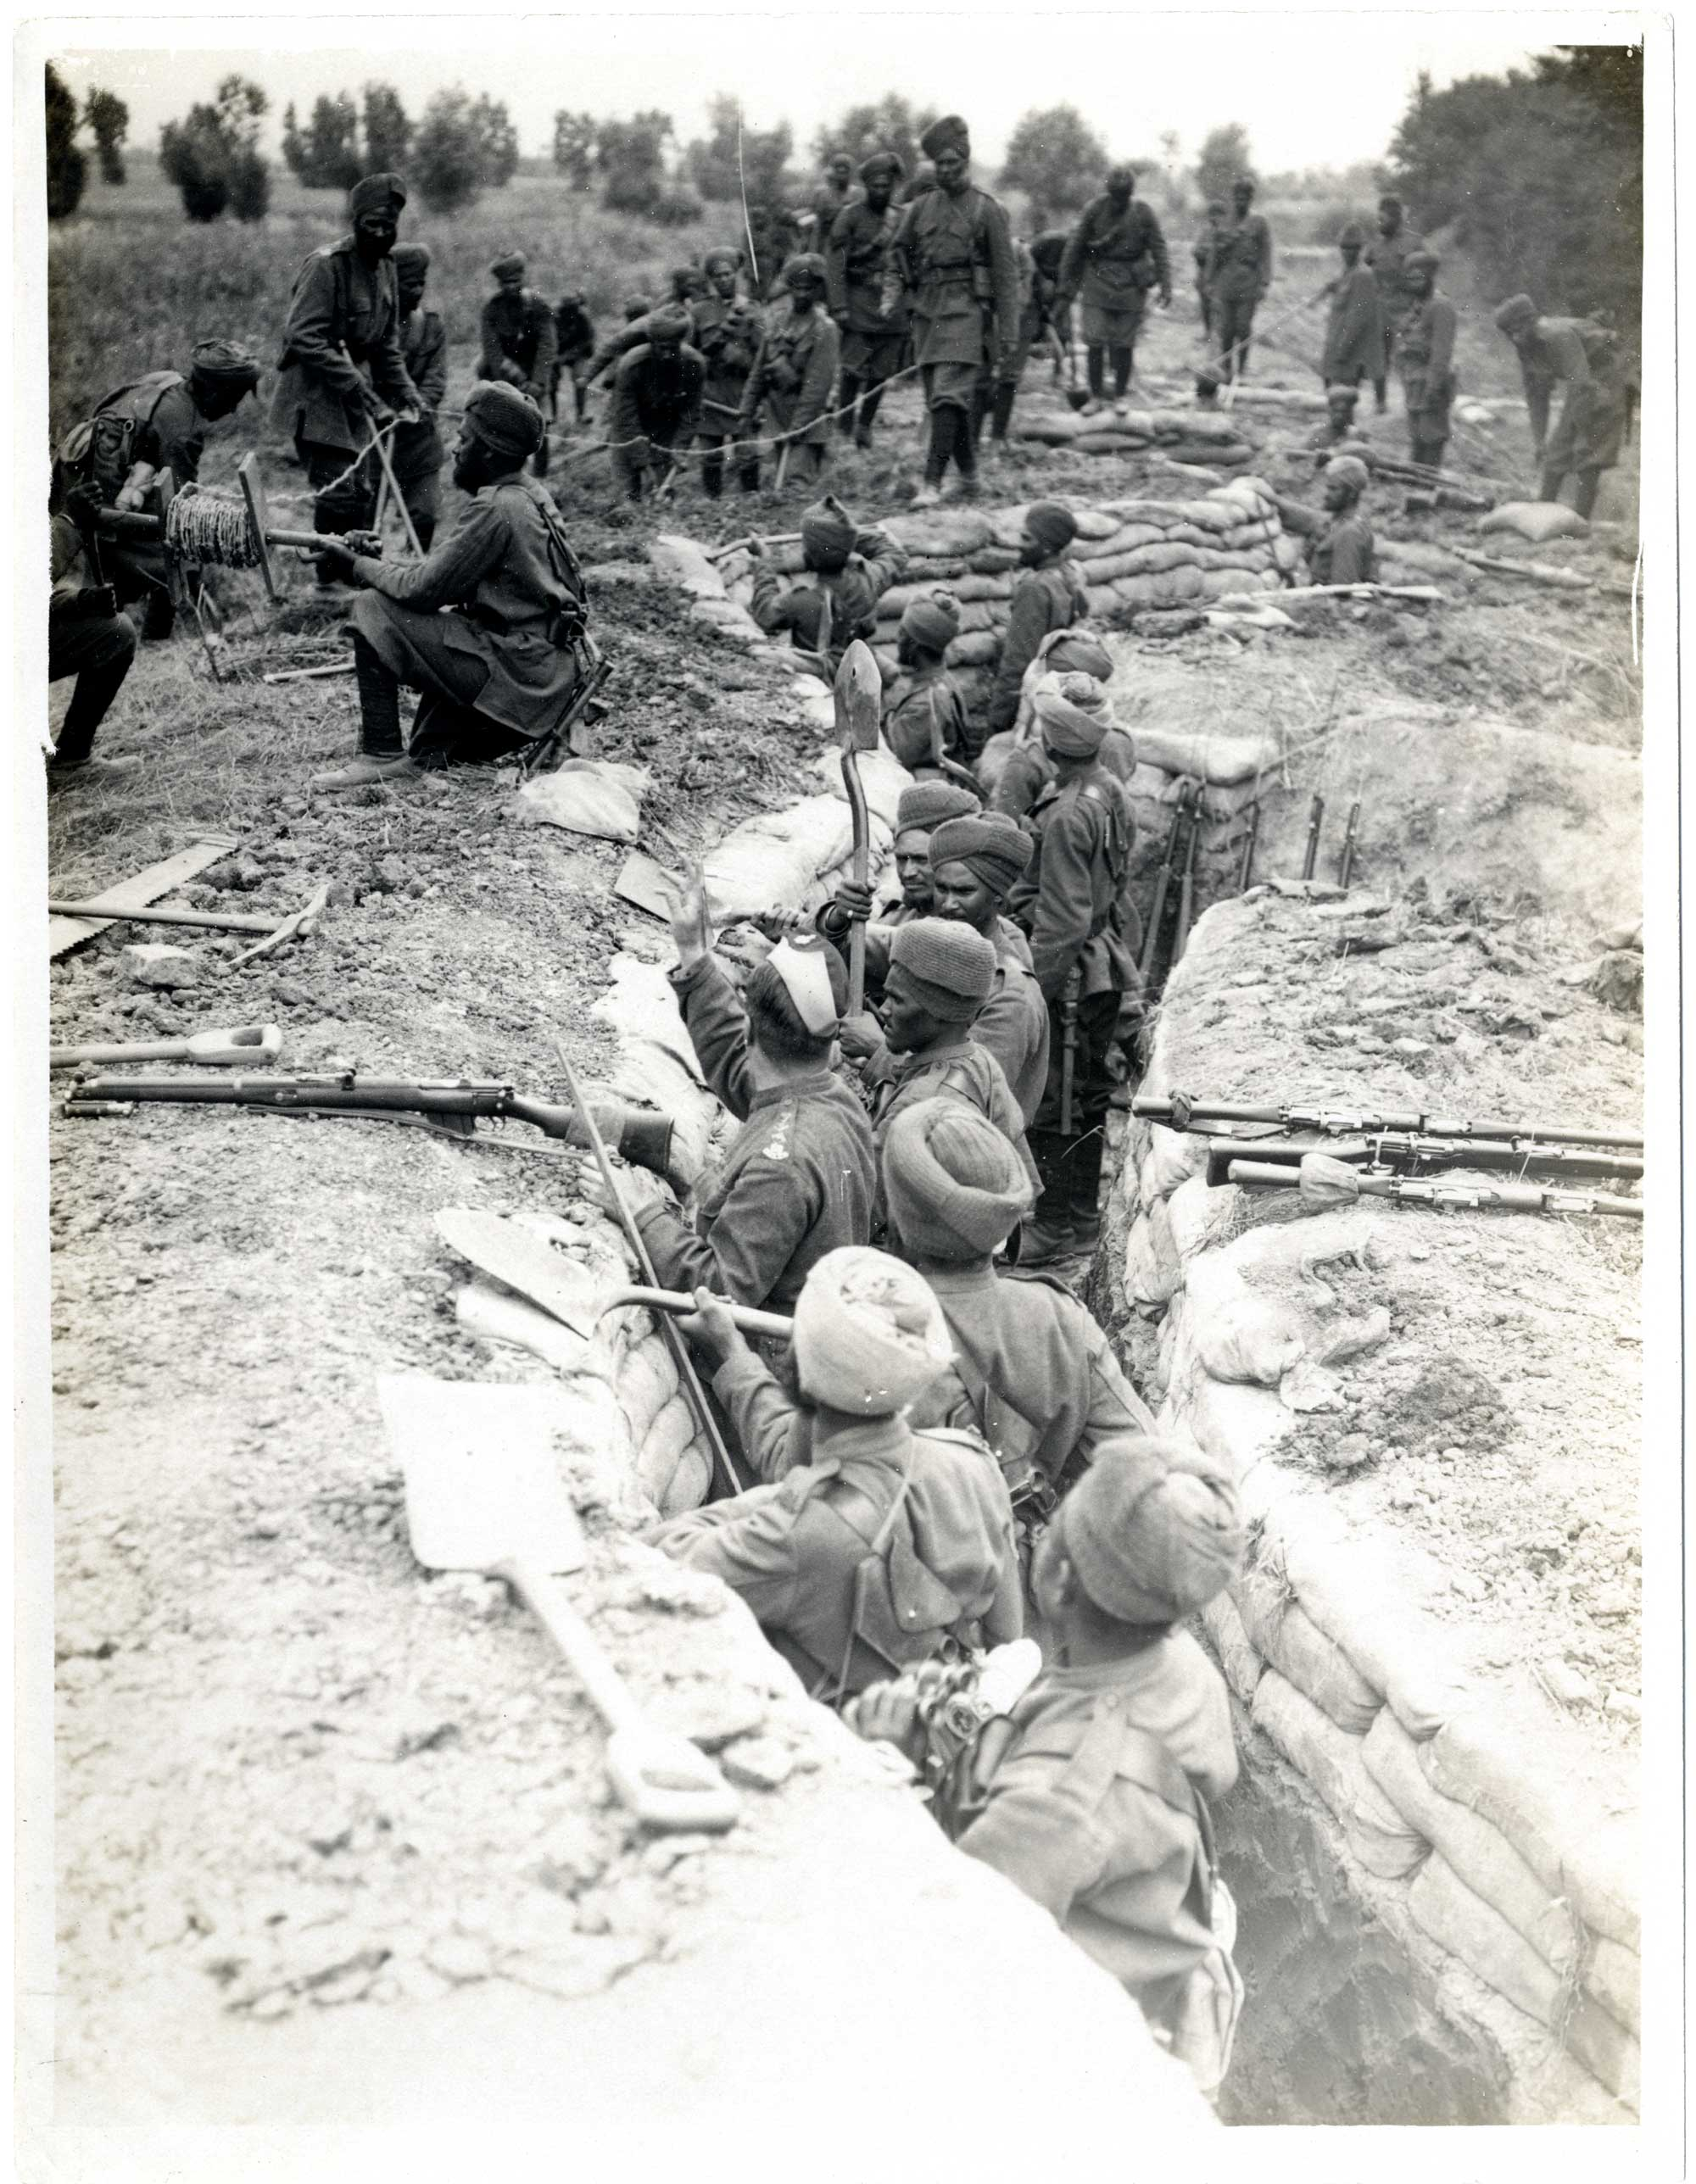 Indian soldiers digging trenches, 1915.